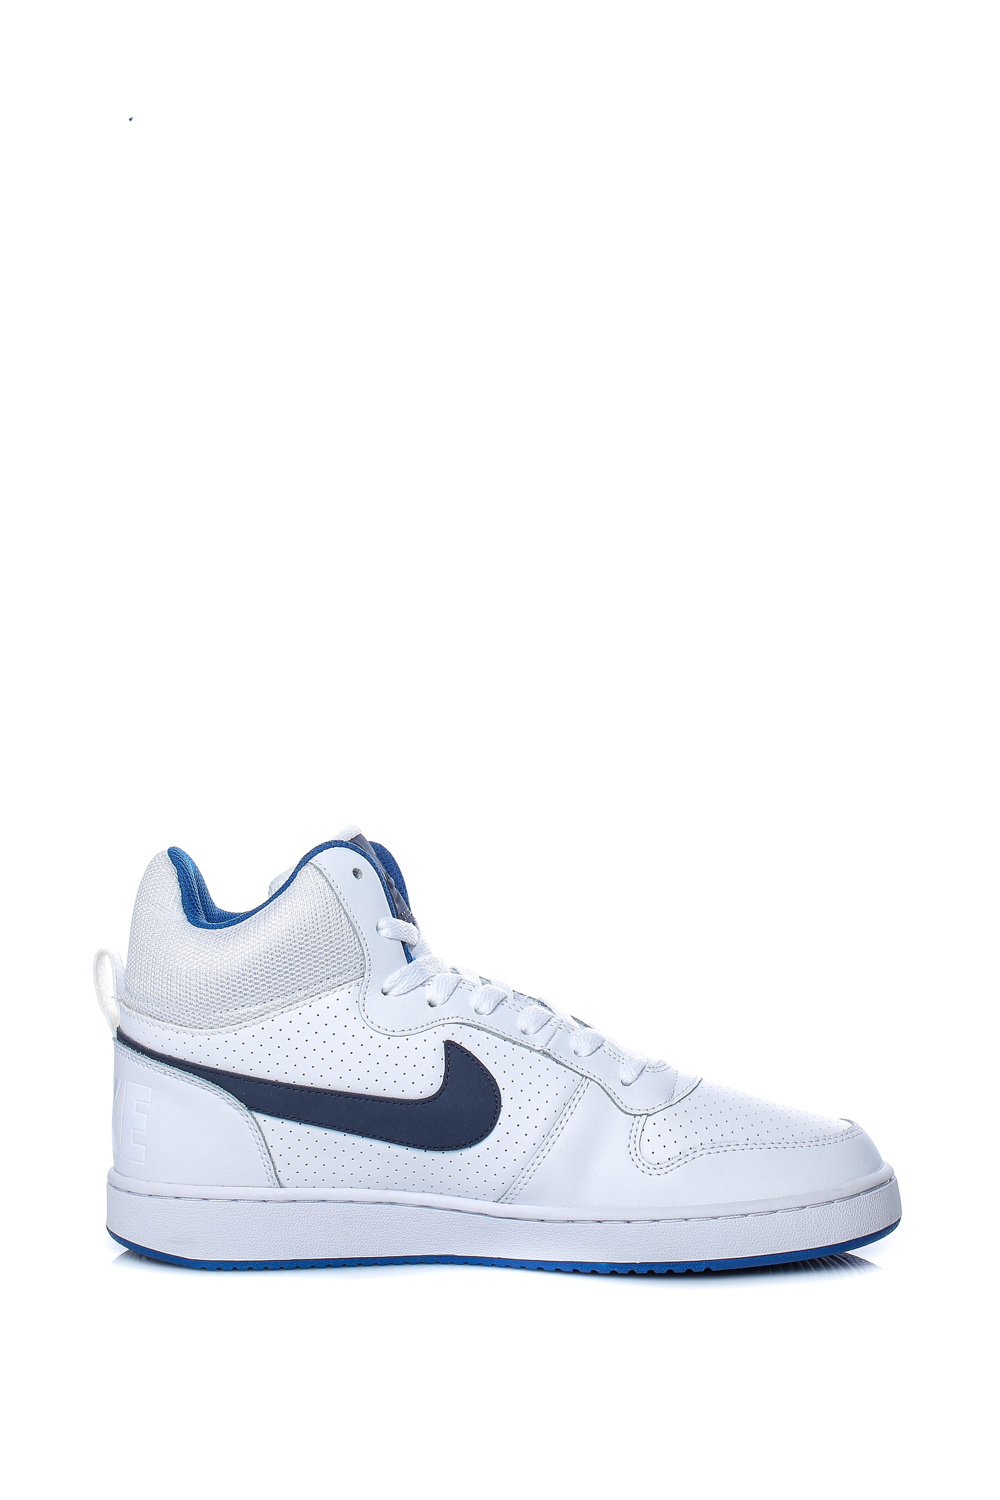 c66524cbc75 -44% Factory Outlet NIKE – Ανδρικά παπούτσια μπάσκετ Nike COURT BOROUGH MID  λευκά